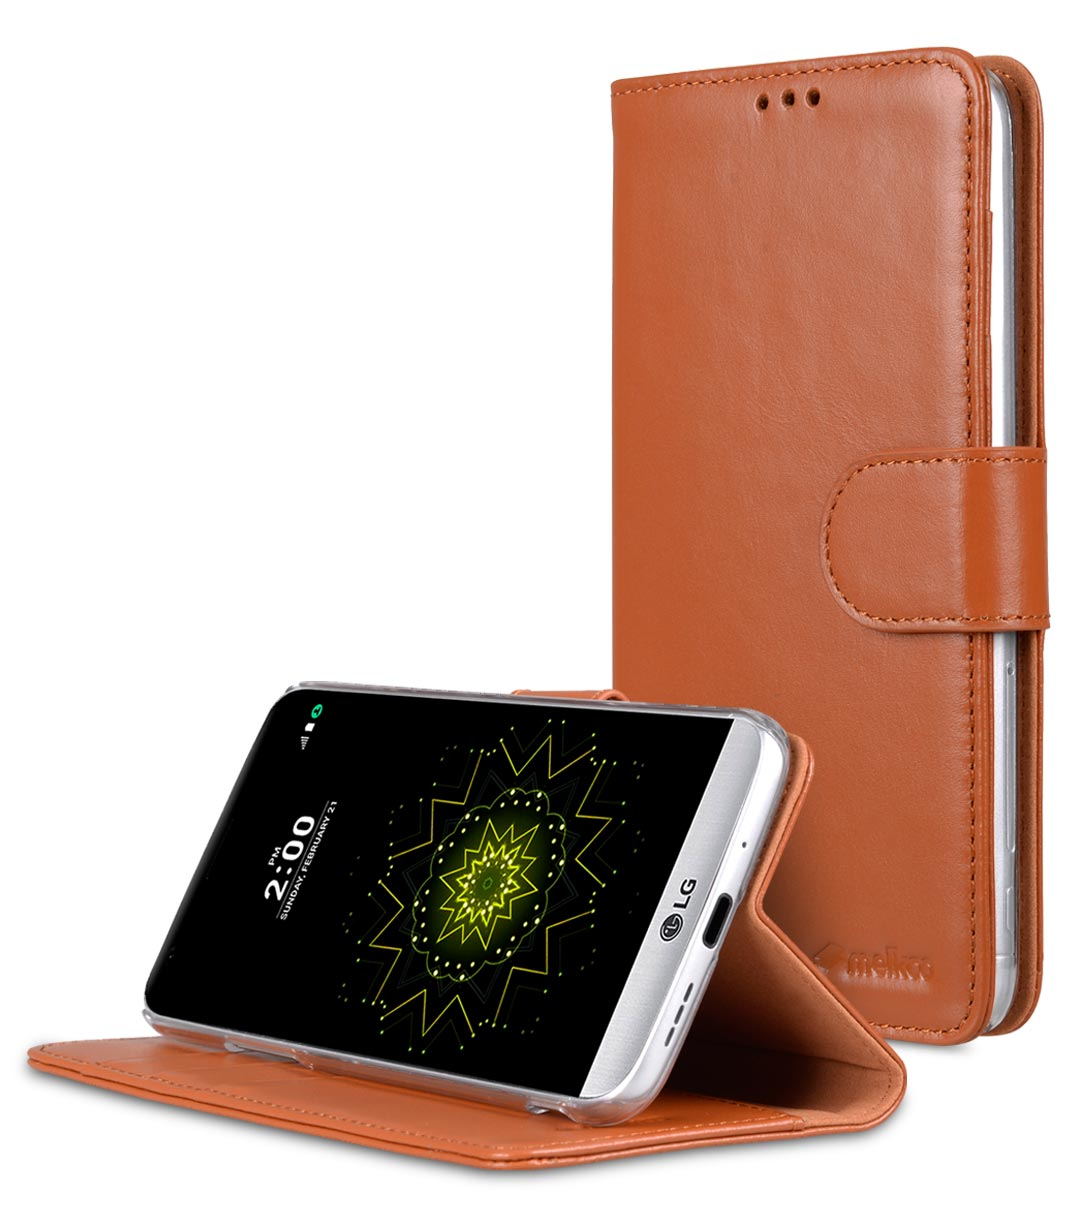 Melkco Premium Genuine Leather Case For LG G5 - Wallet Book Type With Stand Function (Traditional Vintage Brown)